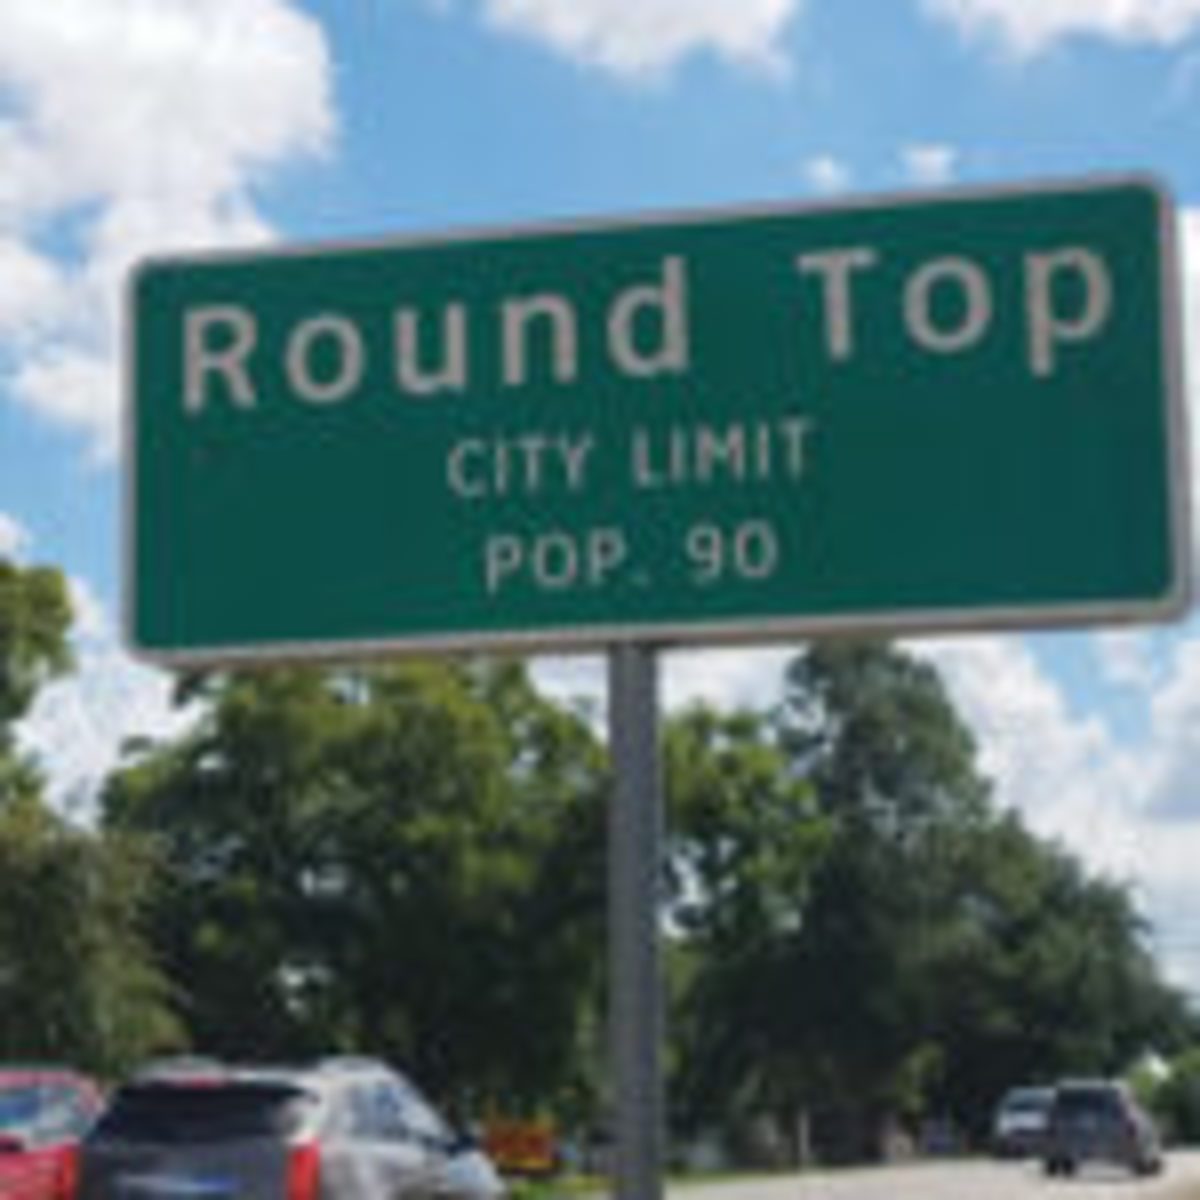 The regular population of the tiny town of Round Top, Texas, is 90. Photos courtesy Melanie Carnation Thomas